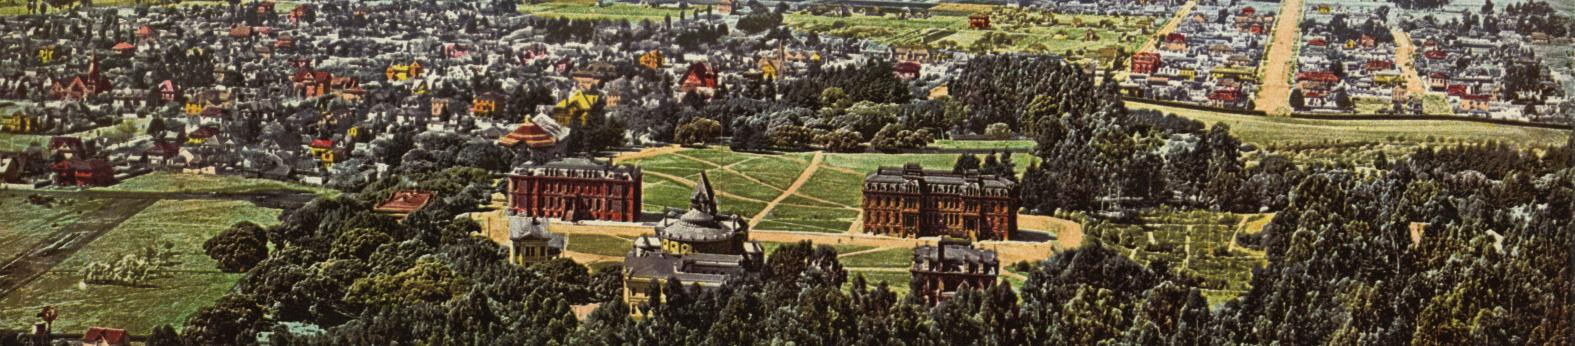 UC Berkeley Campus between 1898 and 1905 (photo courtesy of the Library of Congress)